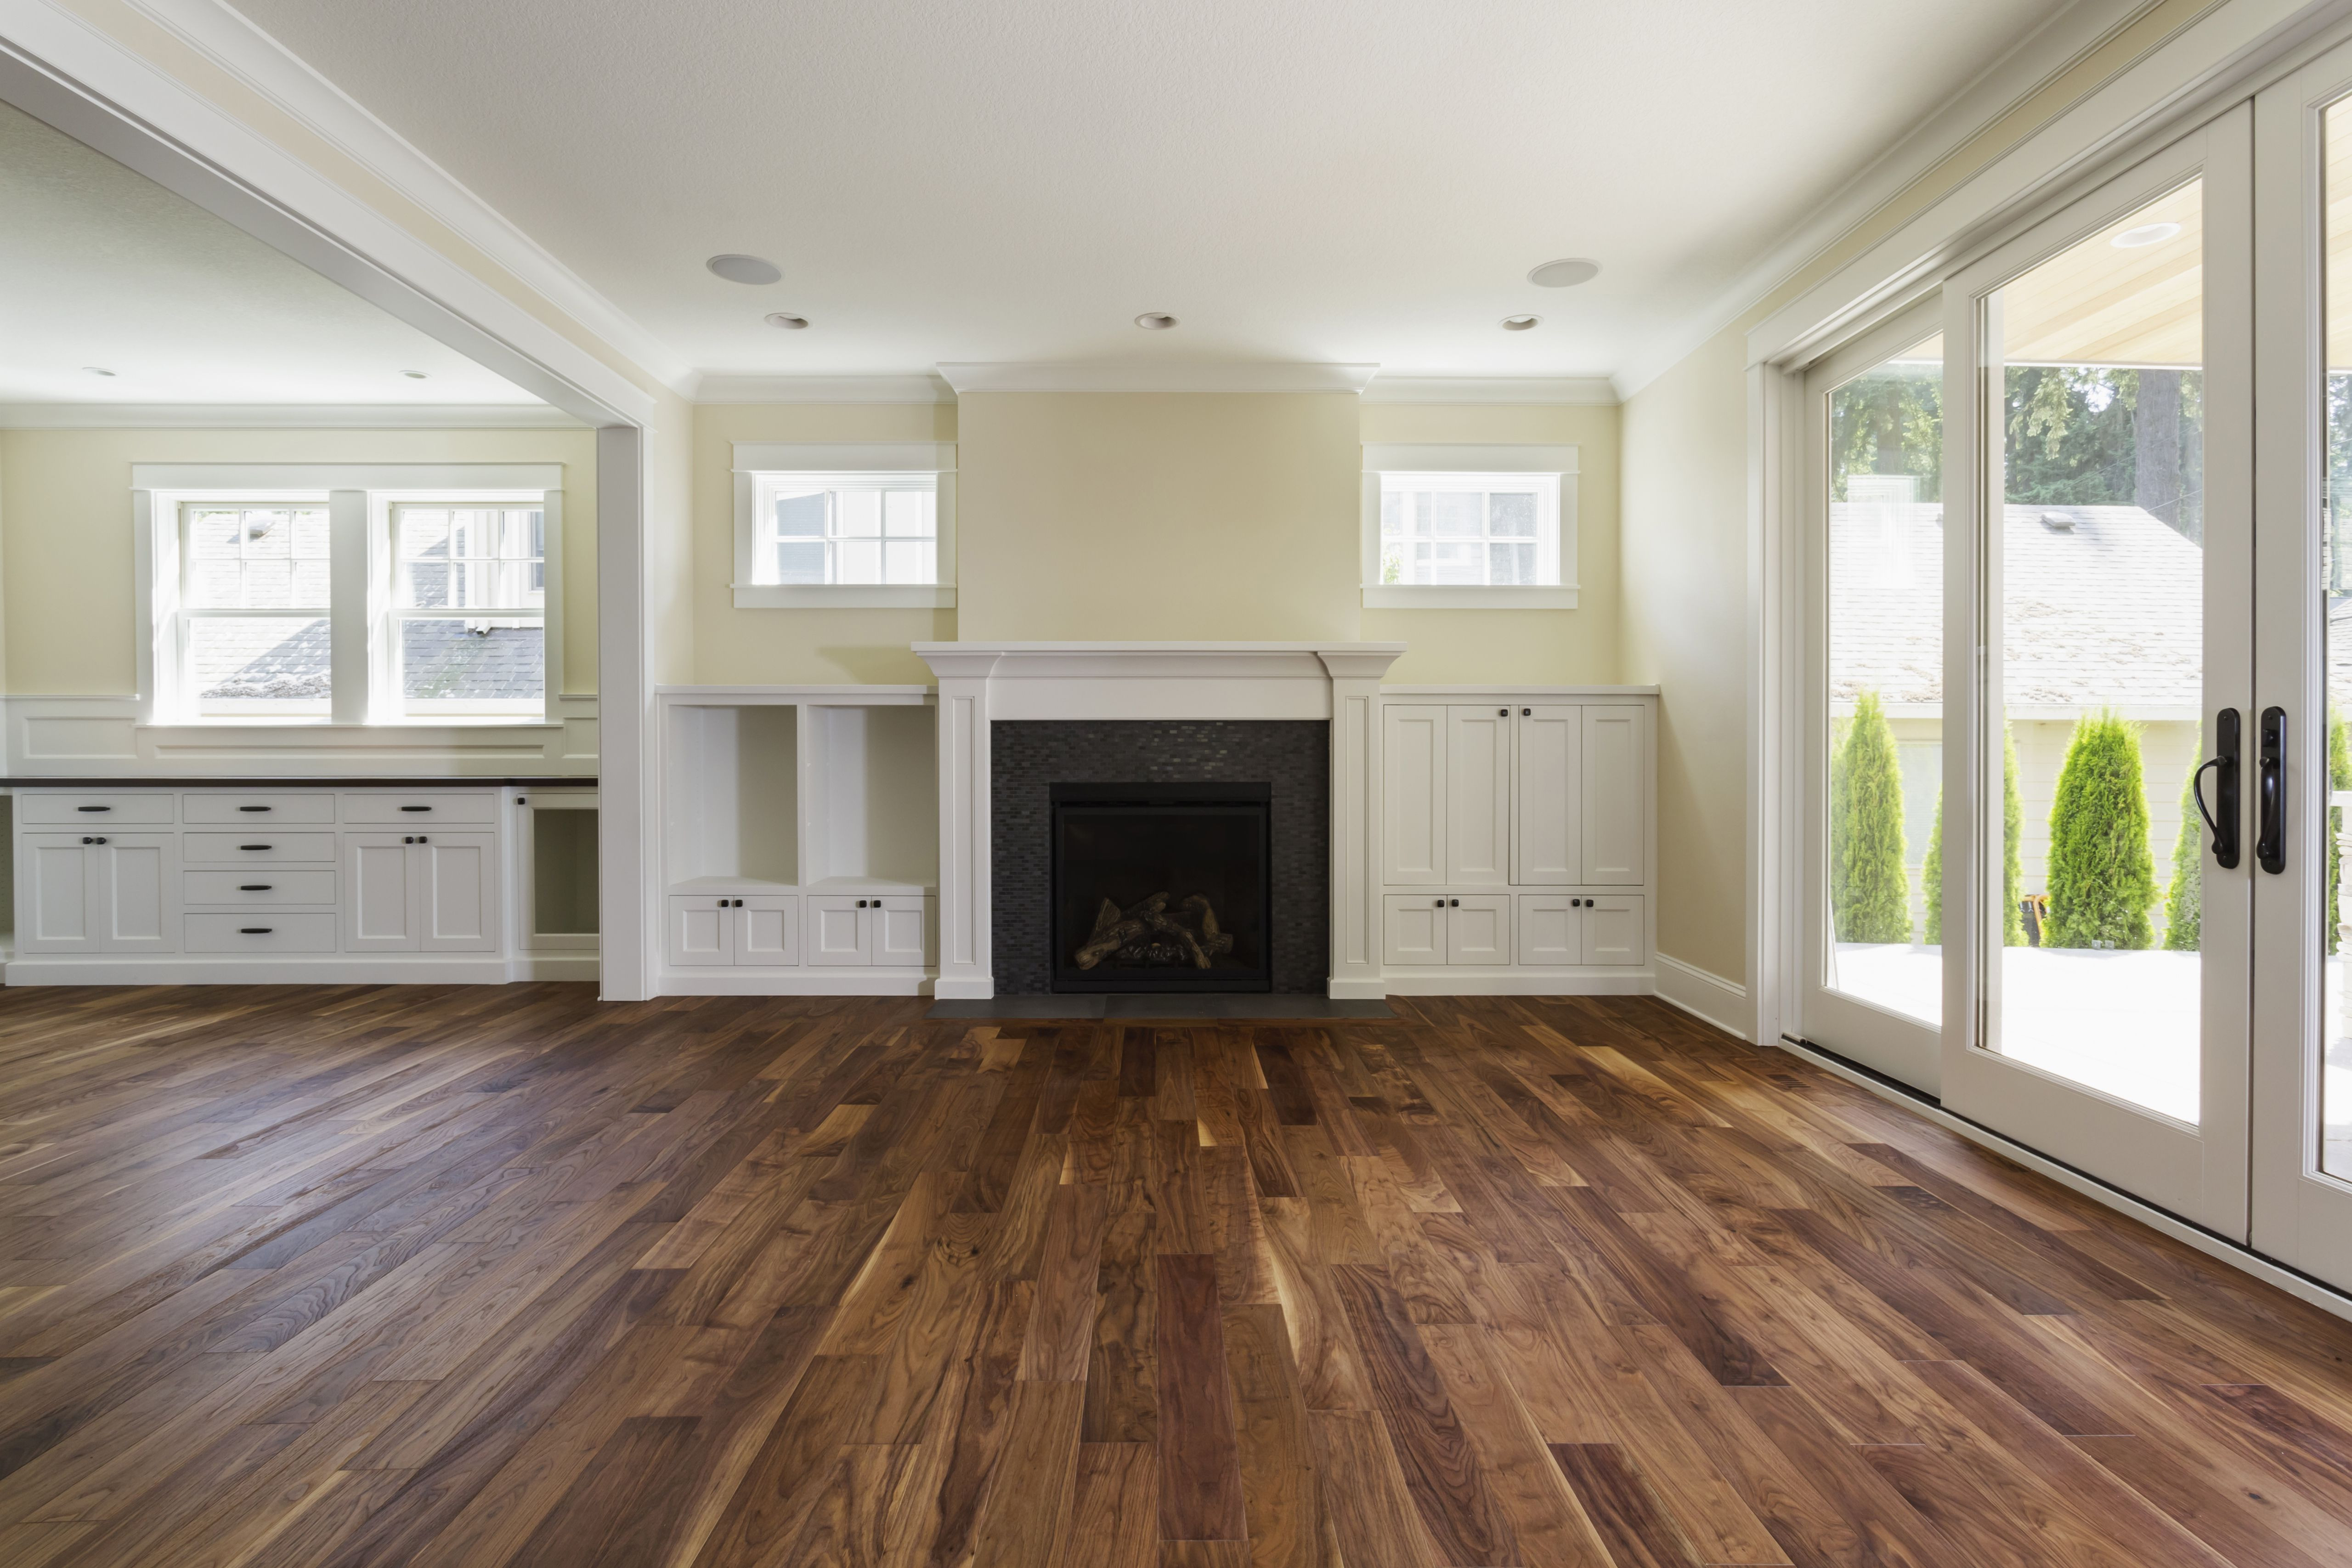 hardwood floor color choices of the pros and cons of prefinished hardwood flooring with regard to fireplace and built in shelves in living room 482143011 57bef8e33df78cc16e035397